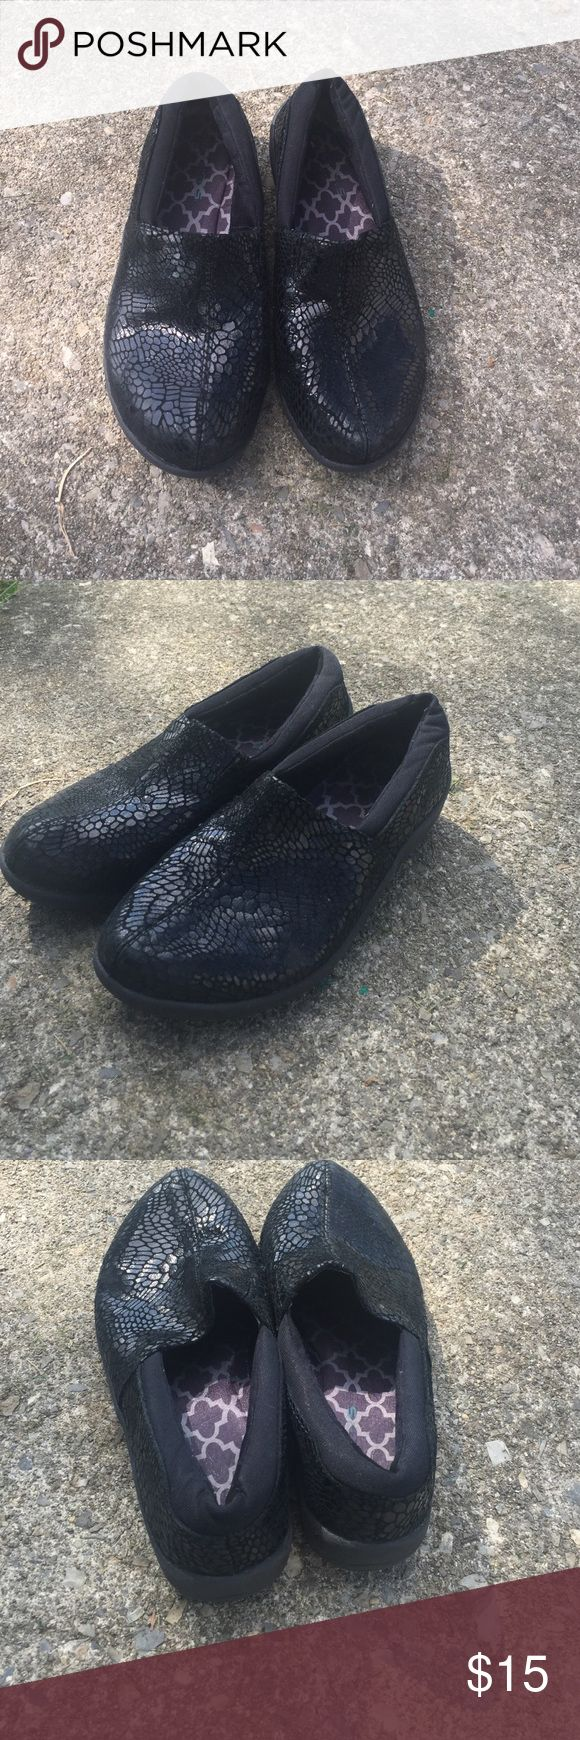 Skechers slip on shoes with lizard print Black leather upper lizard print comfort shoe. Extremely comfortable gently used Skechers Shoes Flats & Loafers